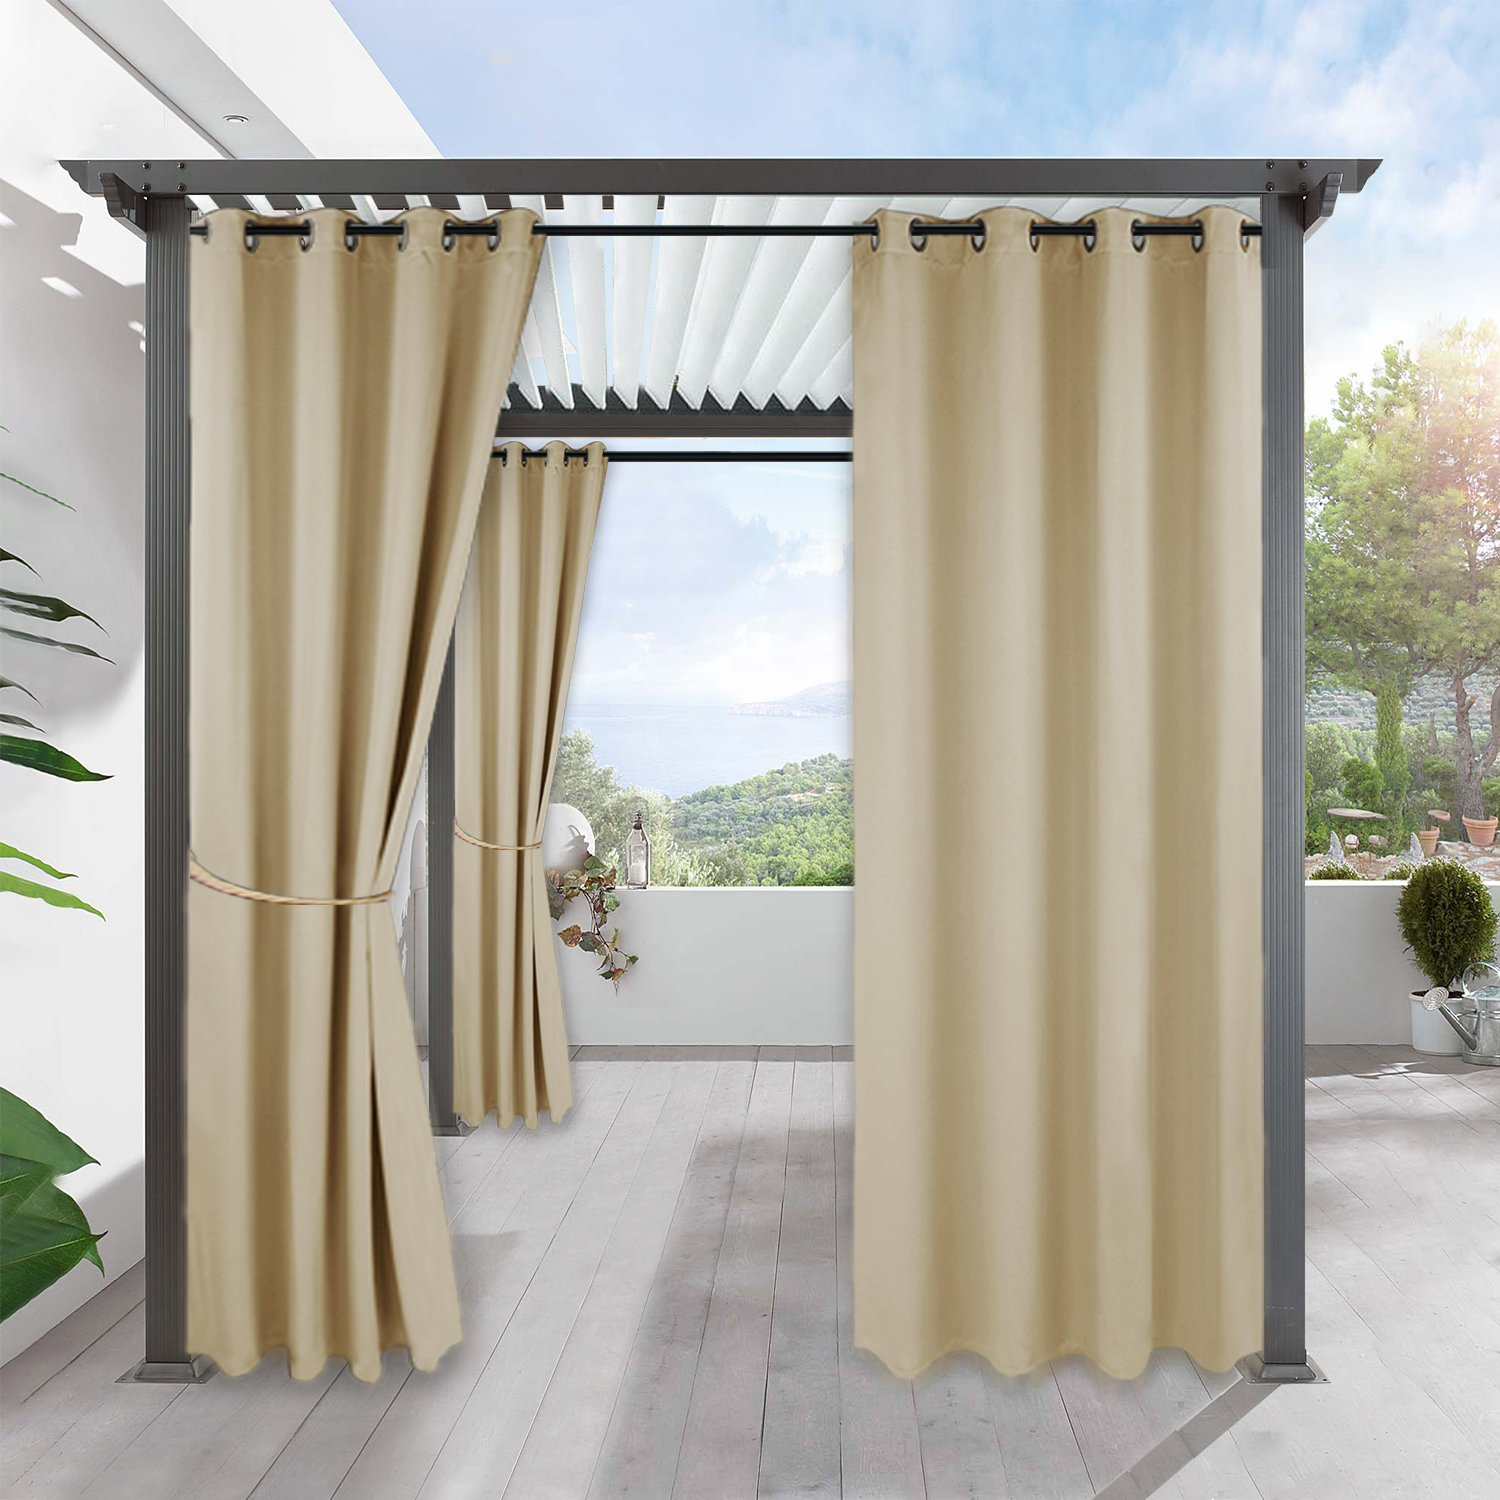 curtains furniture patio outdoor drapes elegant of unique loveseat wicker